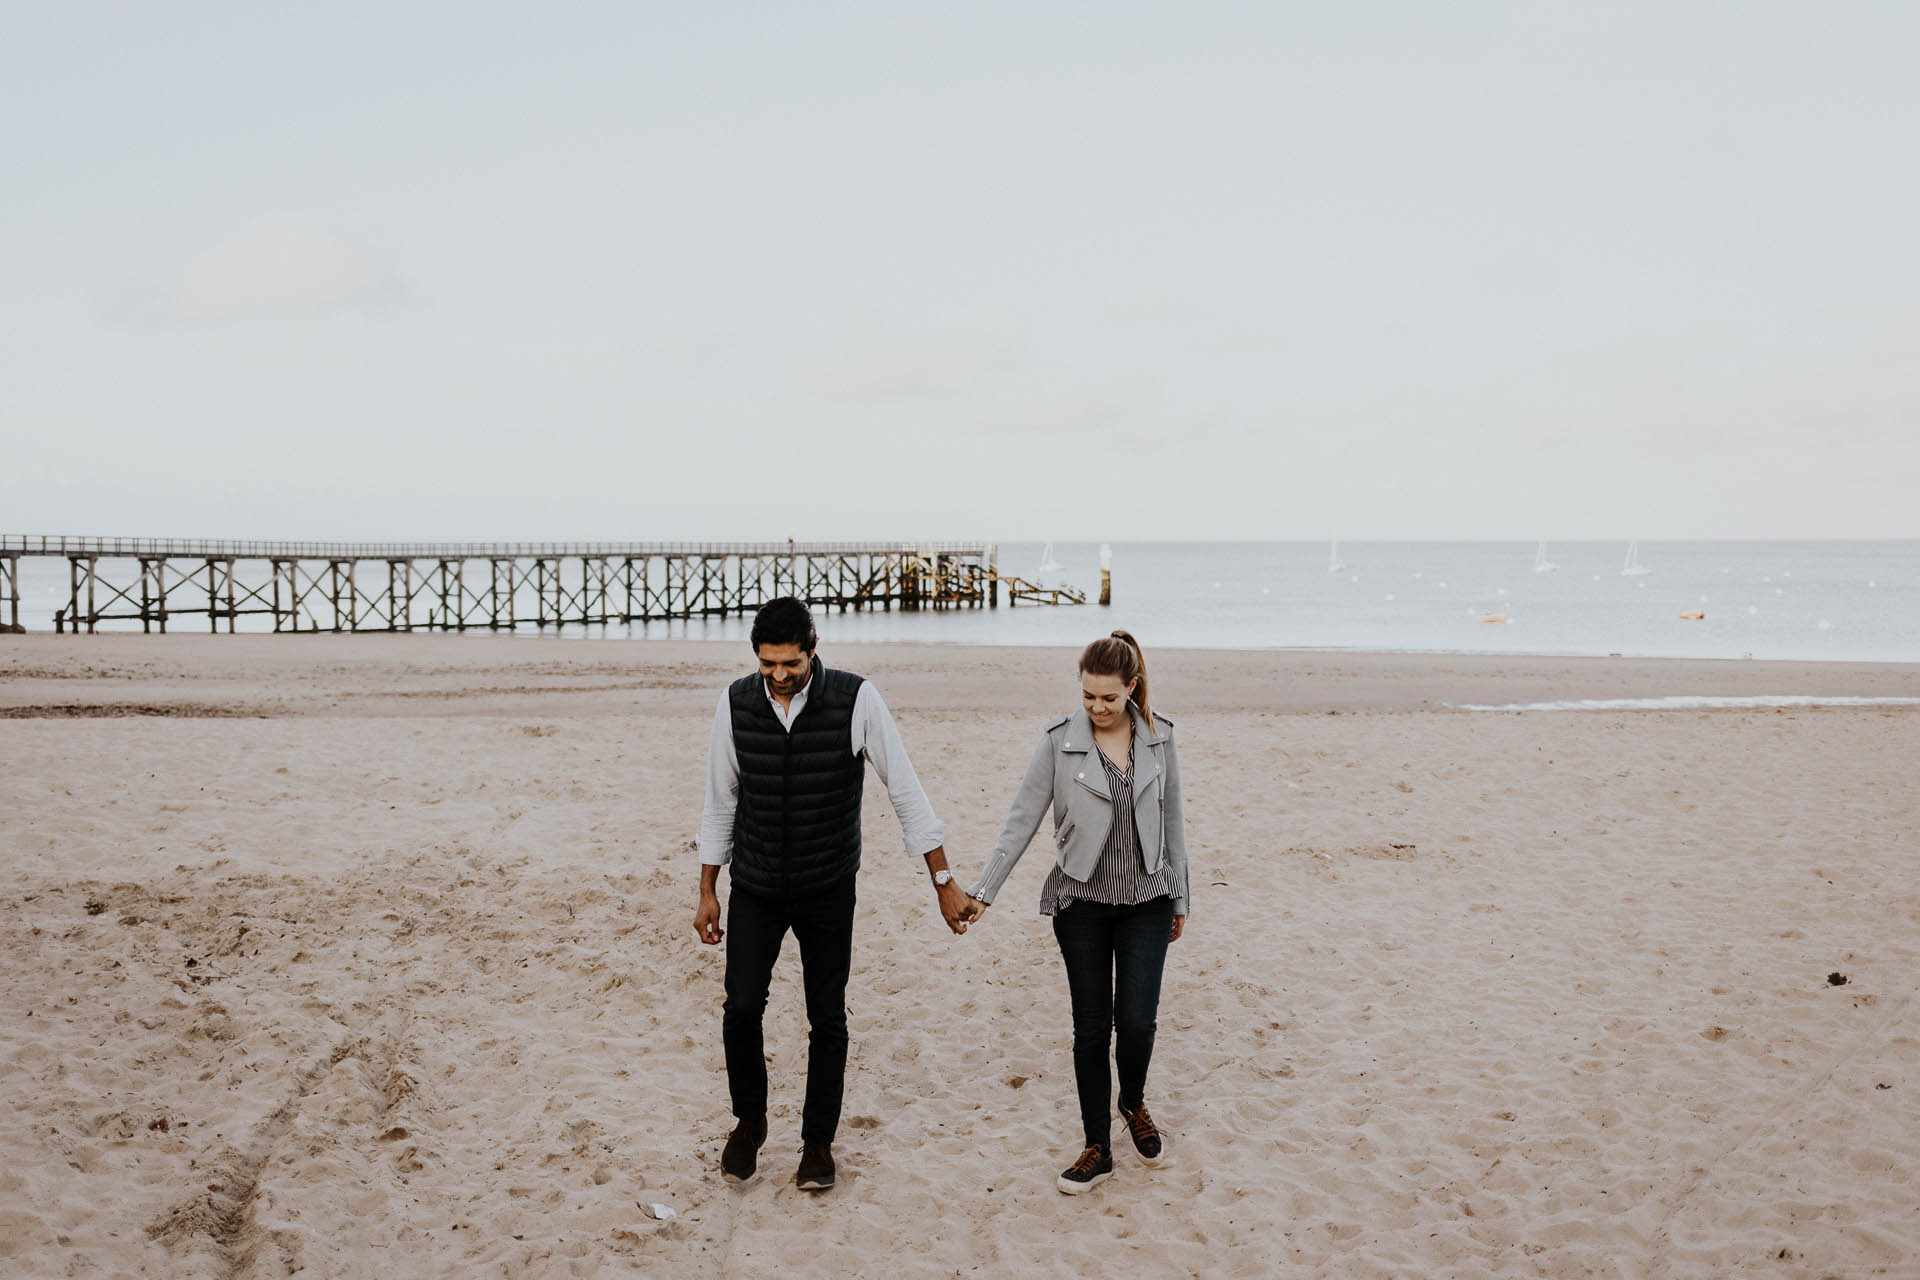 séance_engagement_noirmoutier_flavie_nelly_photographe_nantes-35